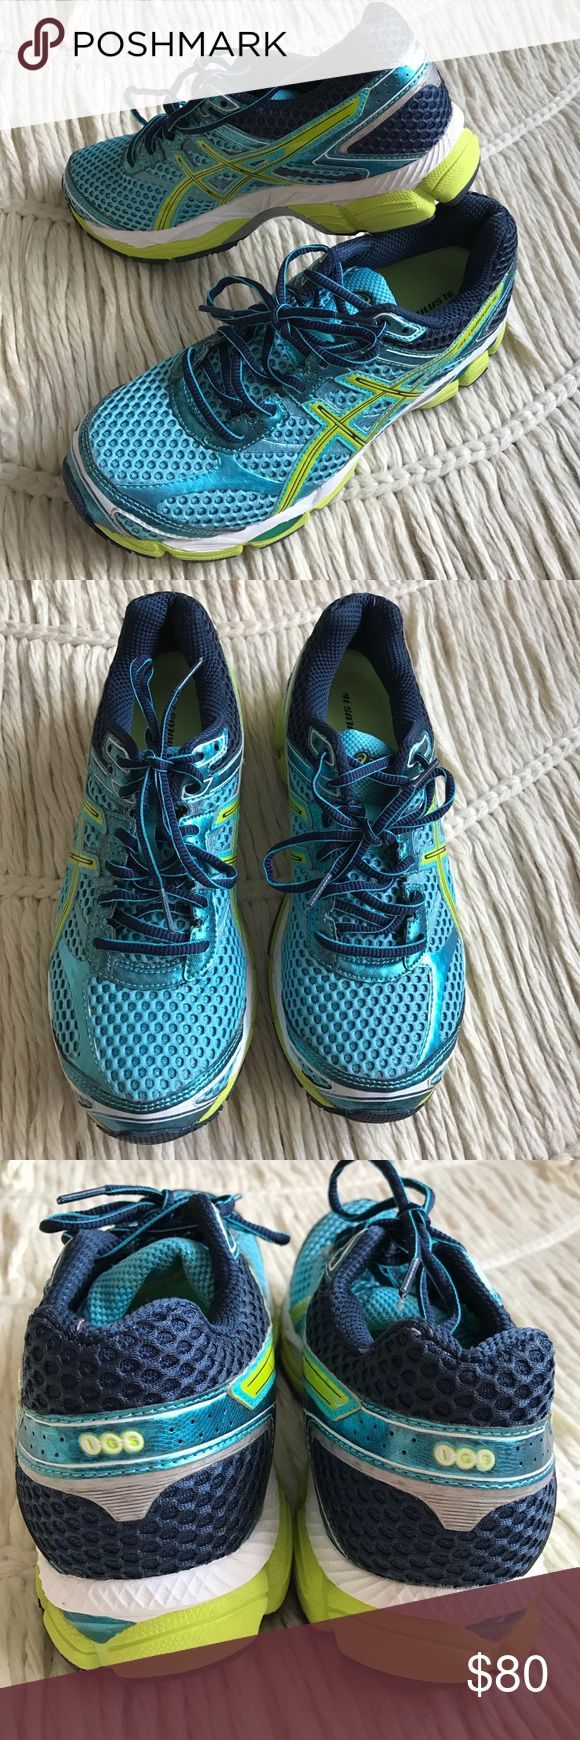 Asics GEL-CUMULUS 16 running exercise sneakers Asics GEL-CUMULUS 16 running sneakers size 9. Like new. Worn maybe once. Awesome! Asics Shoes Sneakers